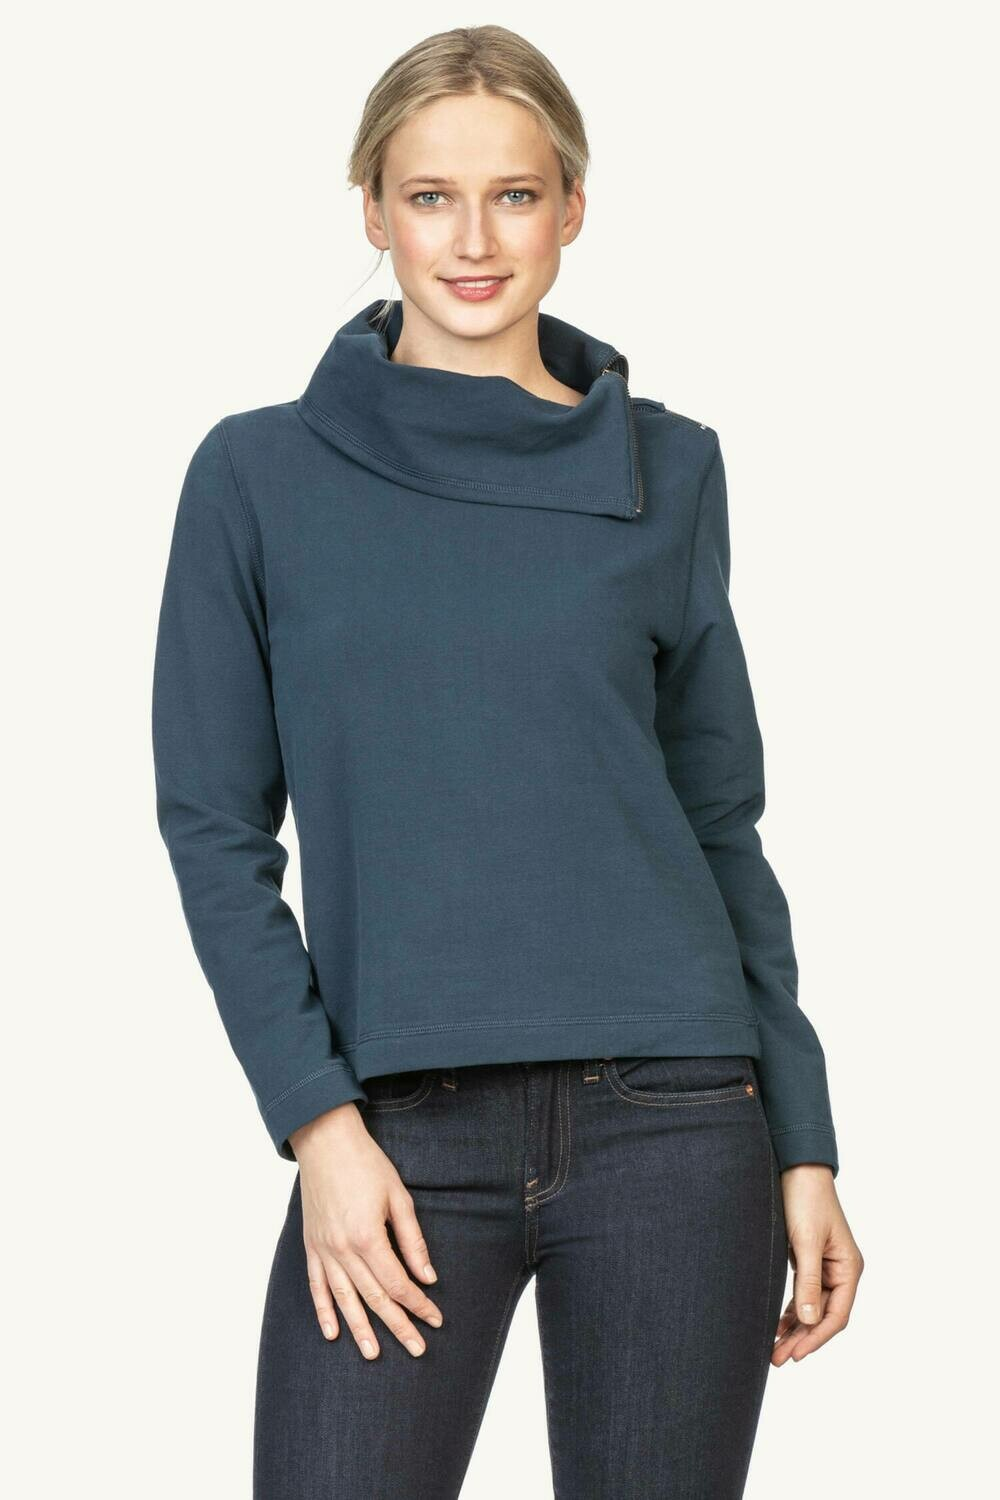 Lilla P Zip Top Lake XL